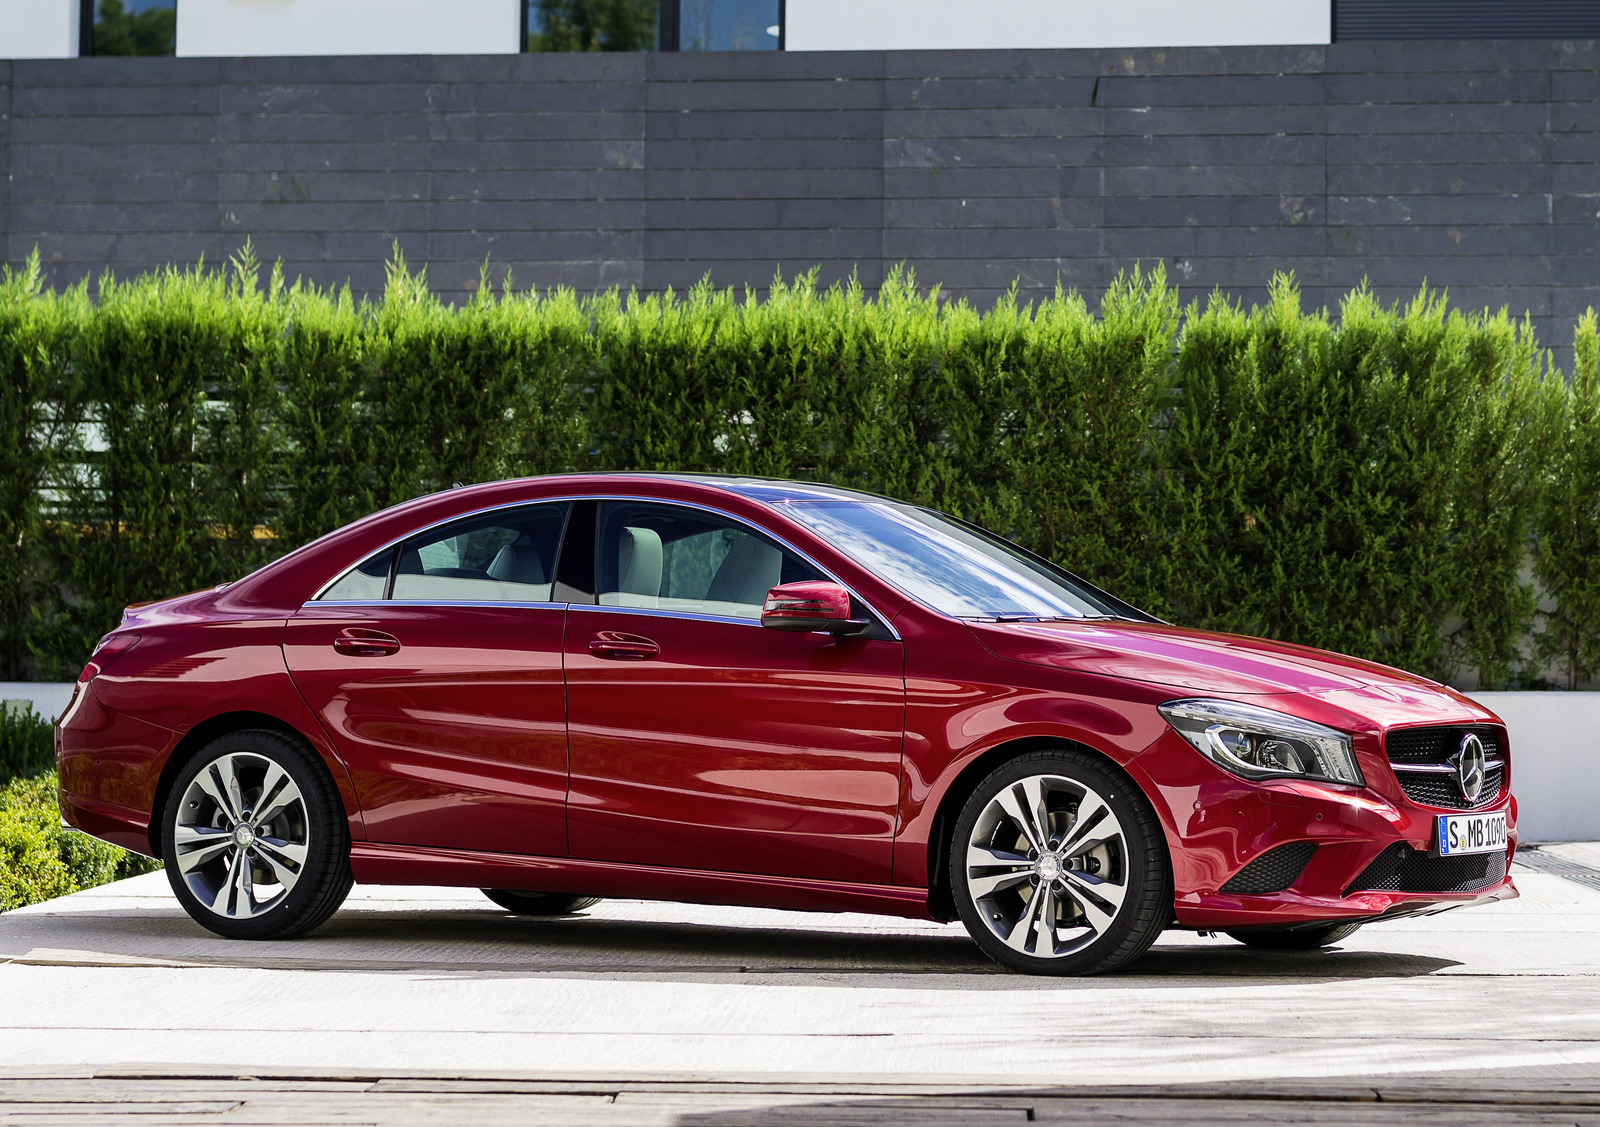 New 2014 2015 mercedes benz cla class for sale cargurus for 2015 mercedes benz cla class